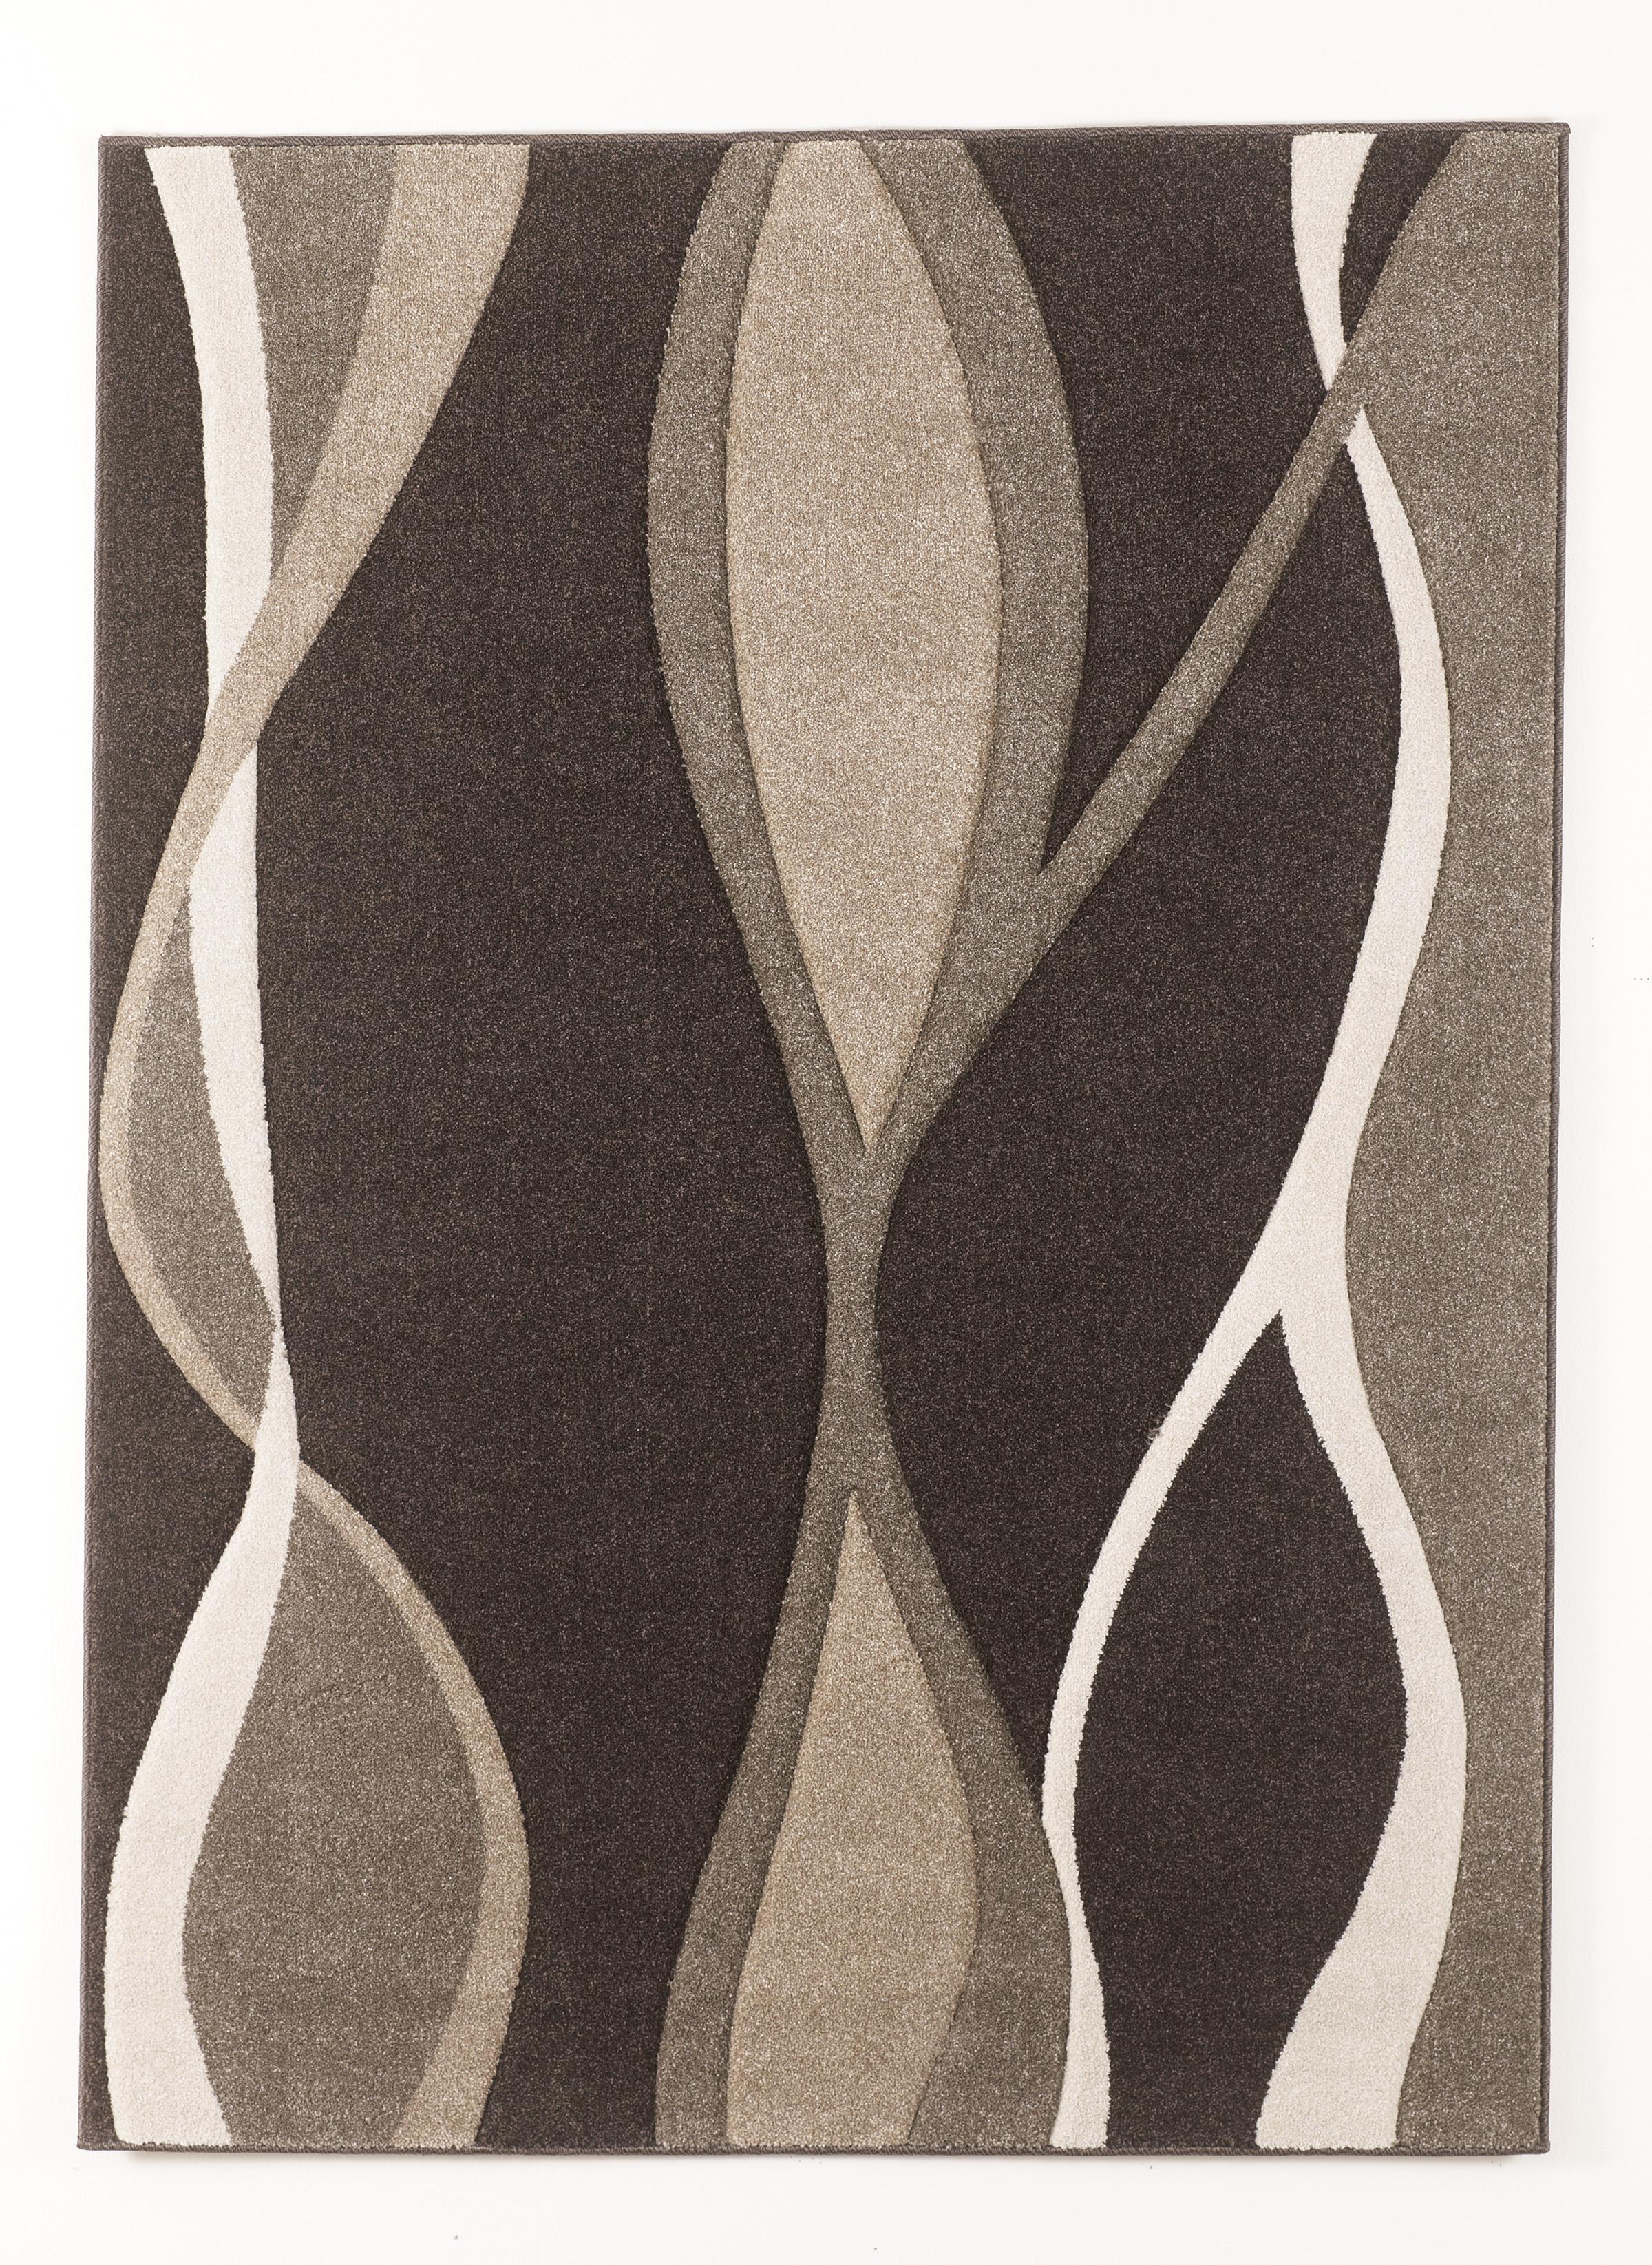 Signature Design by Ashley Contemporary Area Rugs Cadence - Neutral Medium Rug - Item Number: R316002